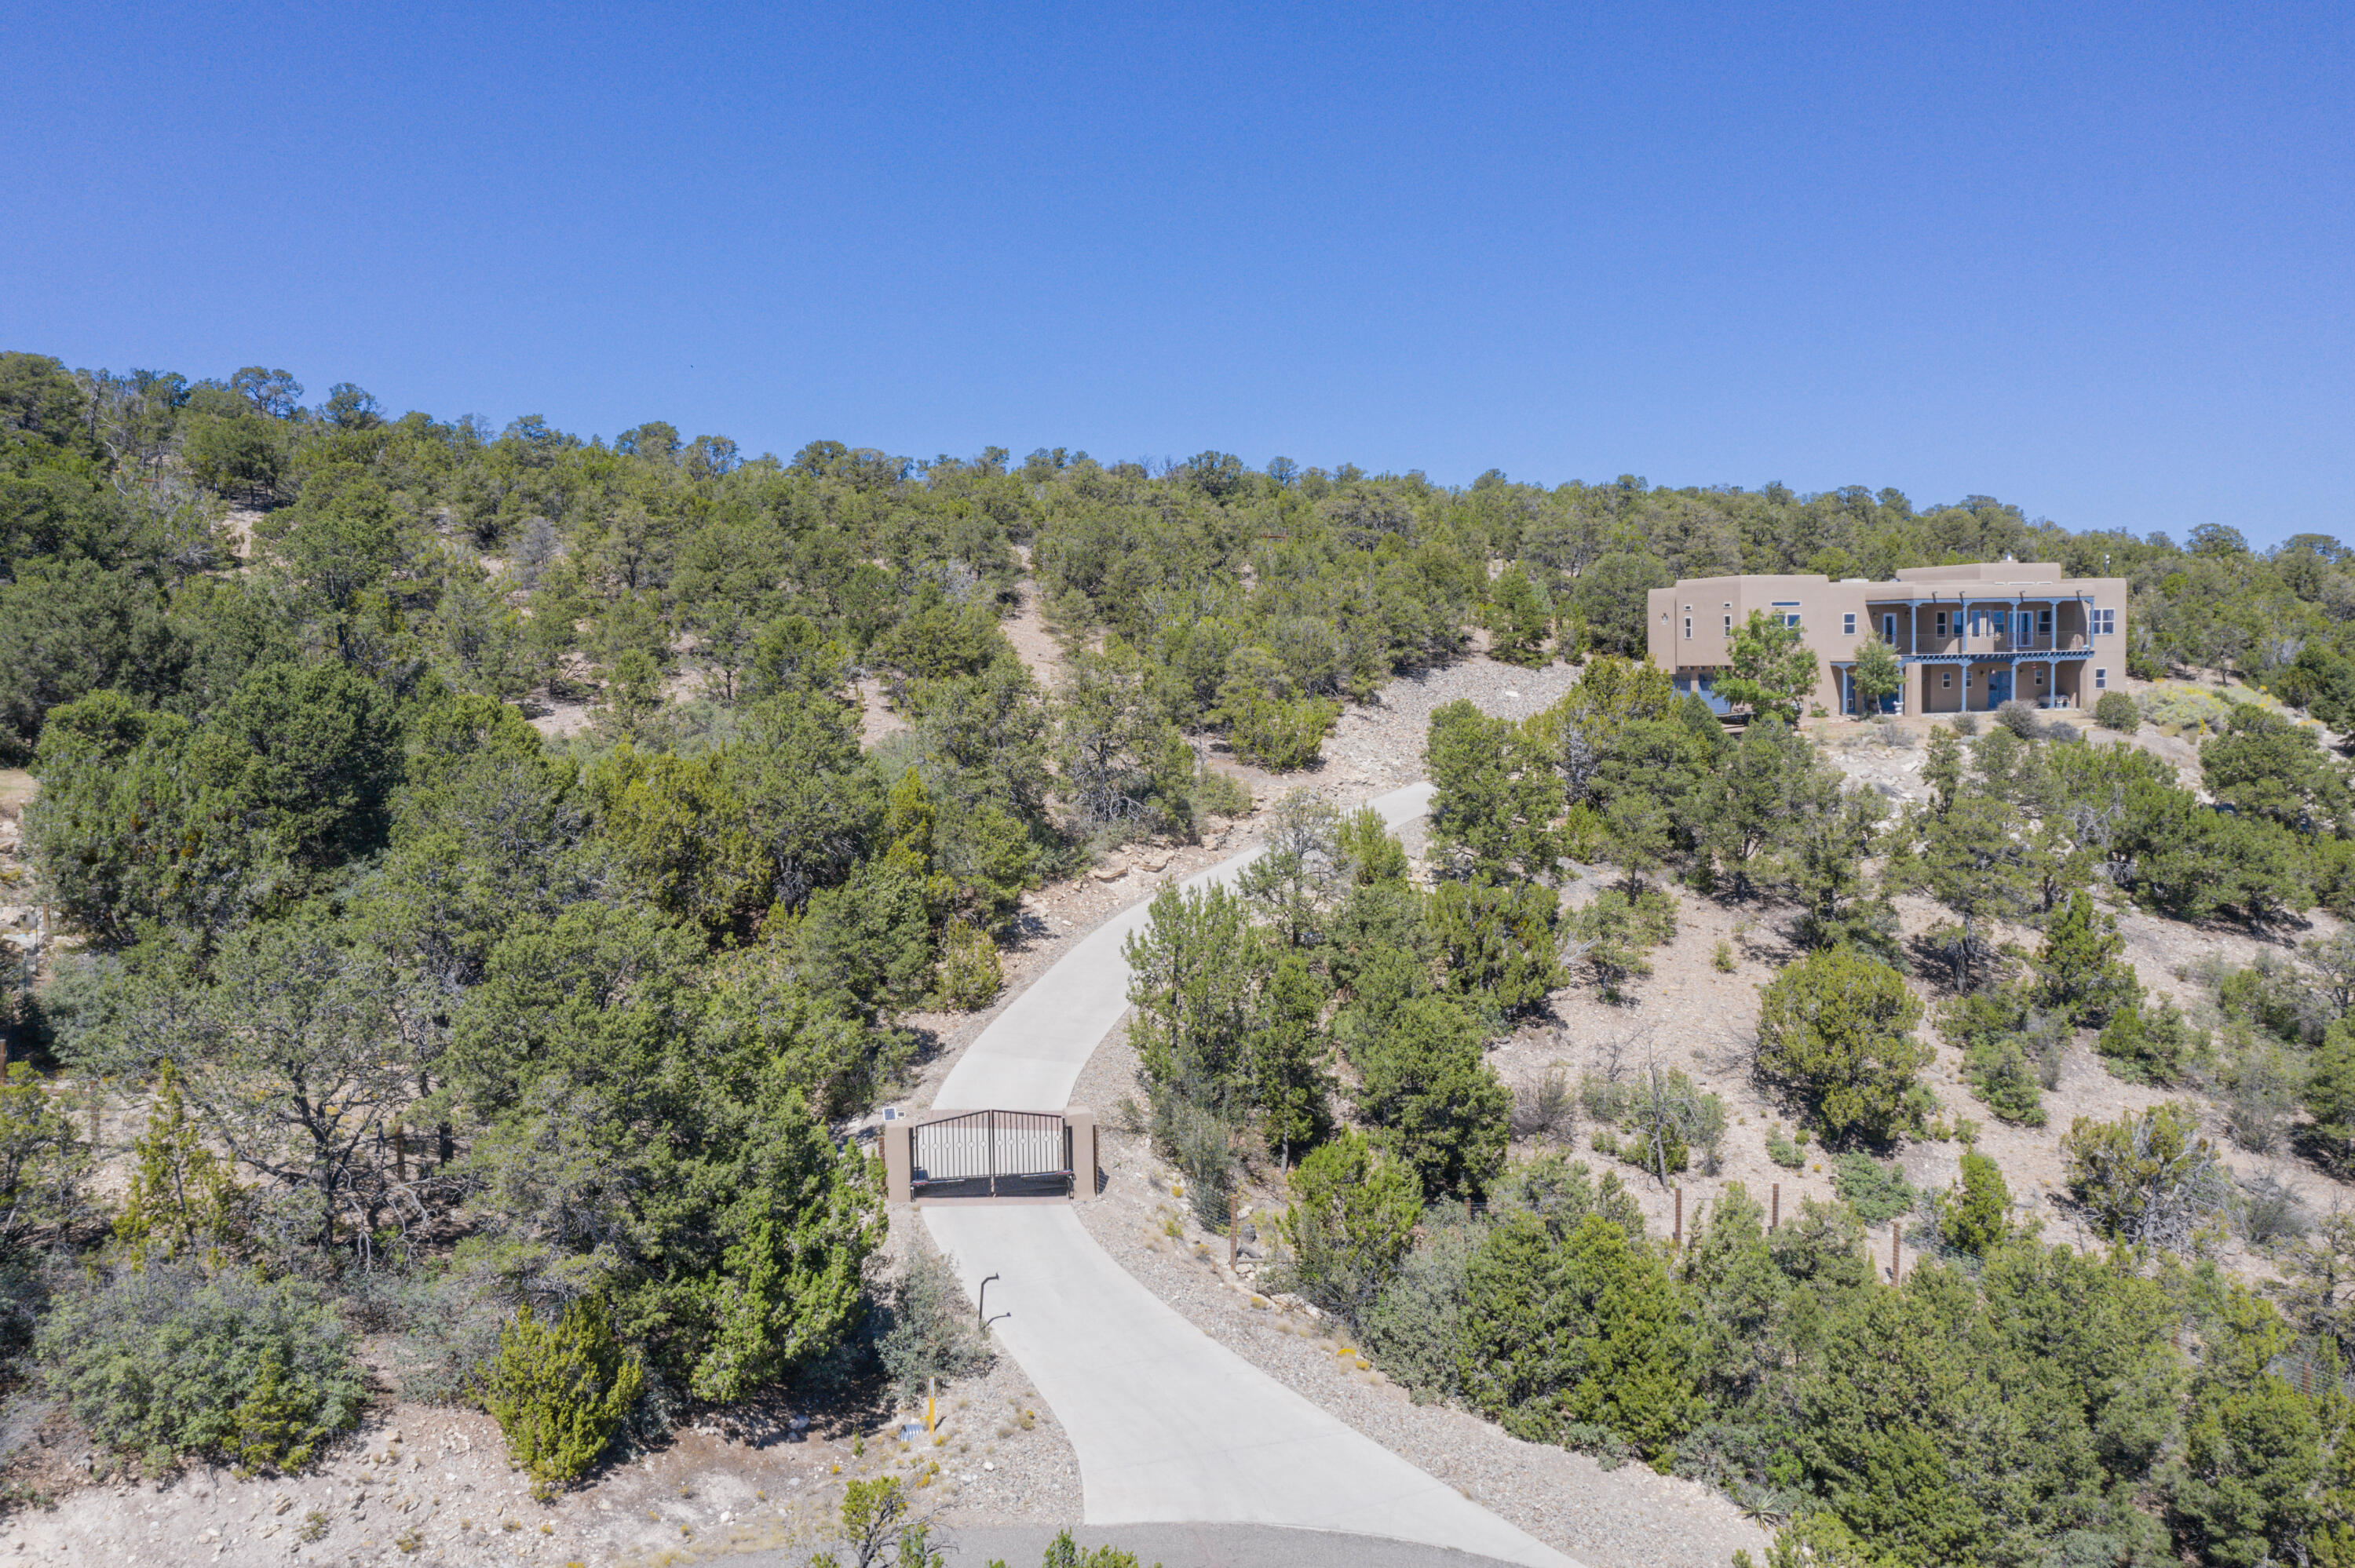 Stunning 4 bed, 4300 sqft home, nestled on over 5 acres of beautiful mountain land with exquisite views throughout! From the gourmet kitchen with granite countertops, custom dove-tailed cabinetry, high-end SS appliances, including a Wolf gas range and Dacor convection oven, and complete with 180 views from the breakfast nook which flows into the living room with custom gas fireplace and filled with light from the plethora of picture and clerestory windows. The master suite features a massive walk-in closet, jetted tub, and enormous separate shower and is on the opposite side of the home from the other three generous bedrooms, including one with custom Murphy bed. To say nothing of the 1500 sqft media/exercise/game room, elevator for easy 2nd floor access, and copious garage storage.